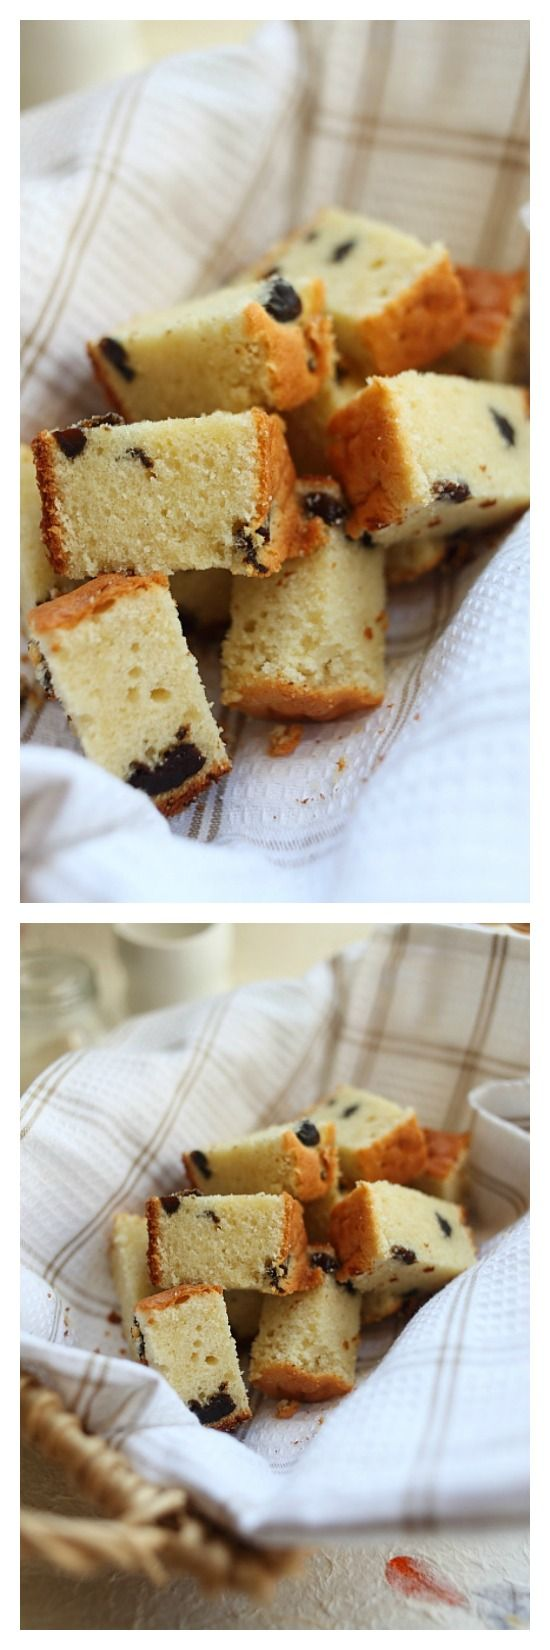 Brandy butter cake, YES! Rich, moist, sweet, and super buttery butter cake with splashes of brandy plus dried prunes. You just have to make this. http://rasamalaysia.com